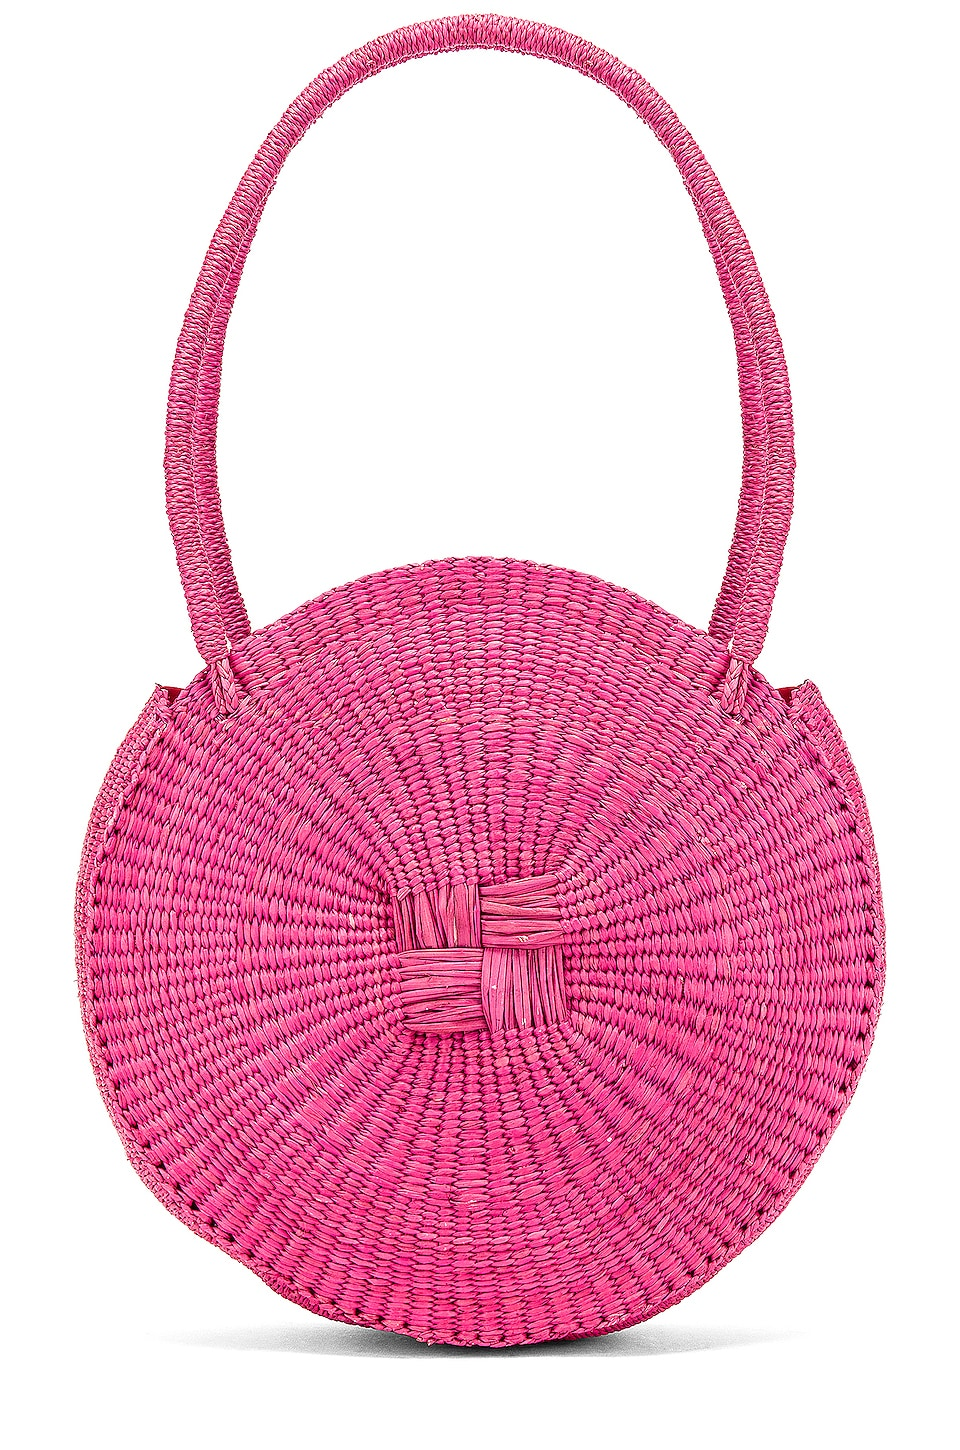 SENSI STUDIO Circle Bag in Pink